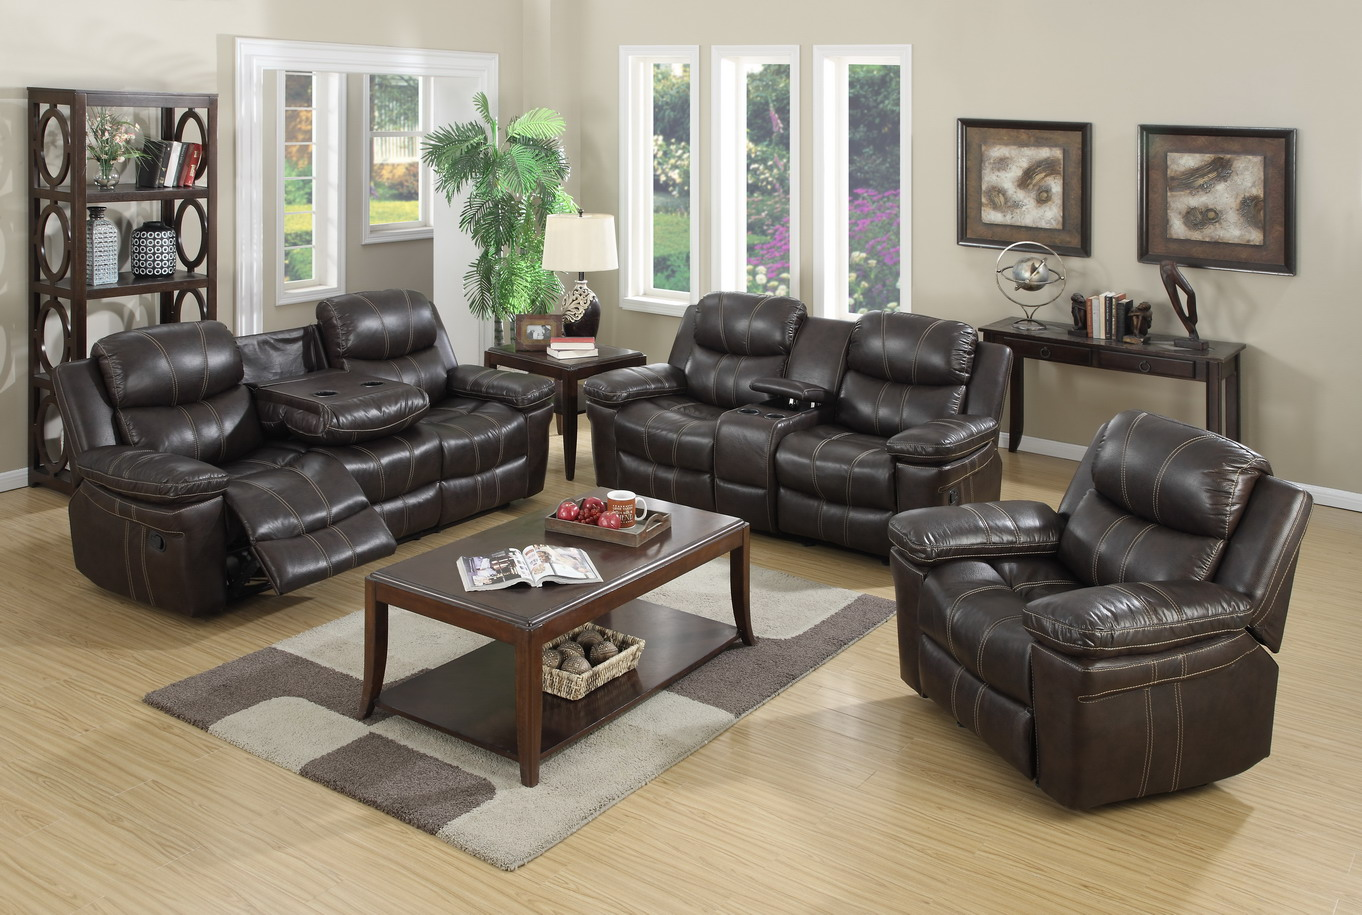 Remarkable El Dorado Leather Reclining Sofa And Loveseat Gmtry Best Dining Table And Chair Ideas Images Gmtryco